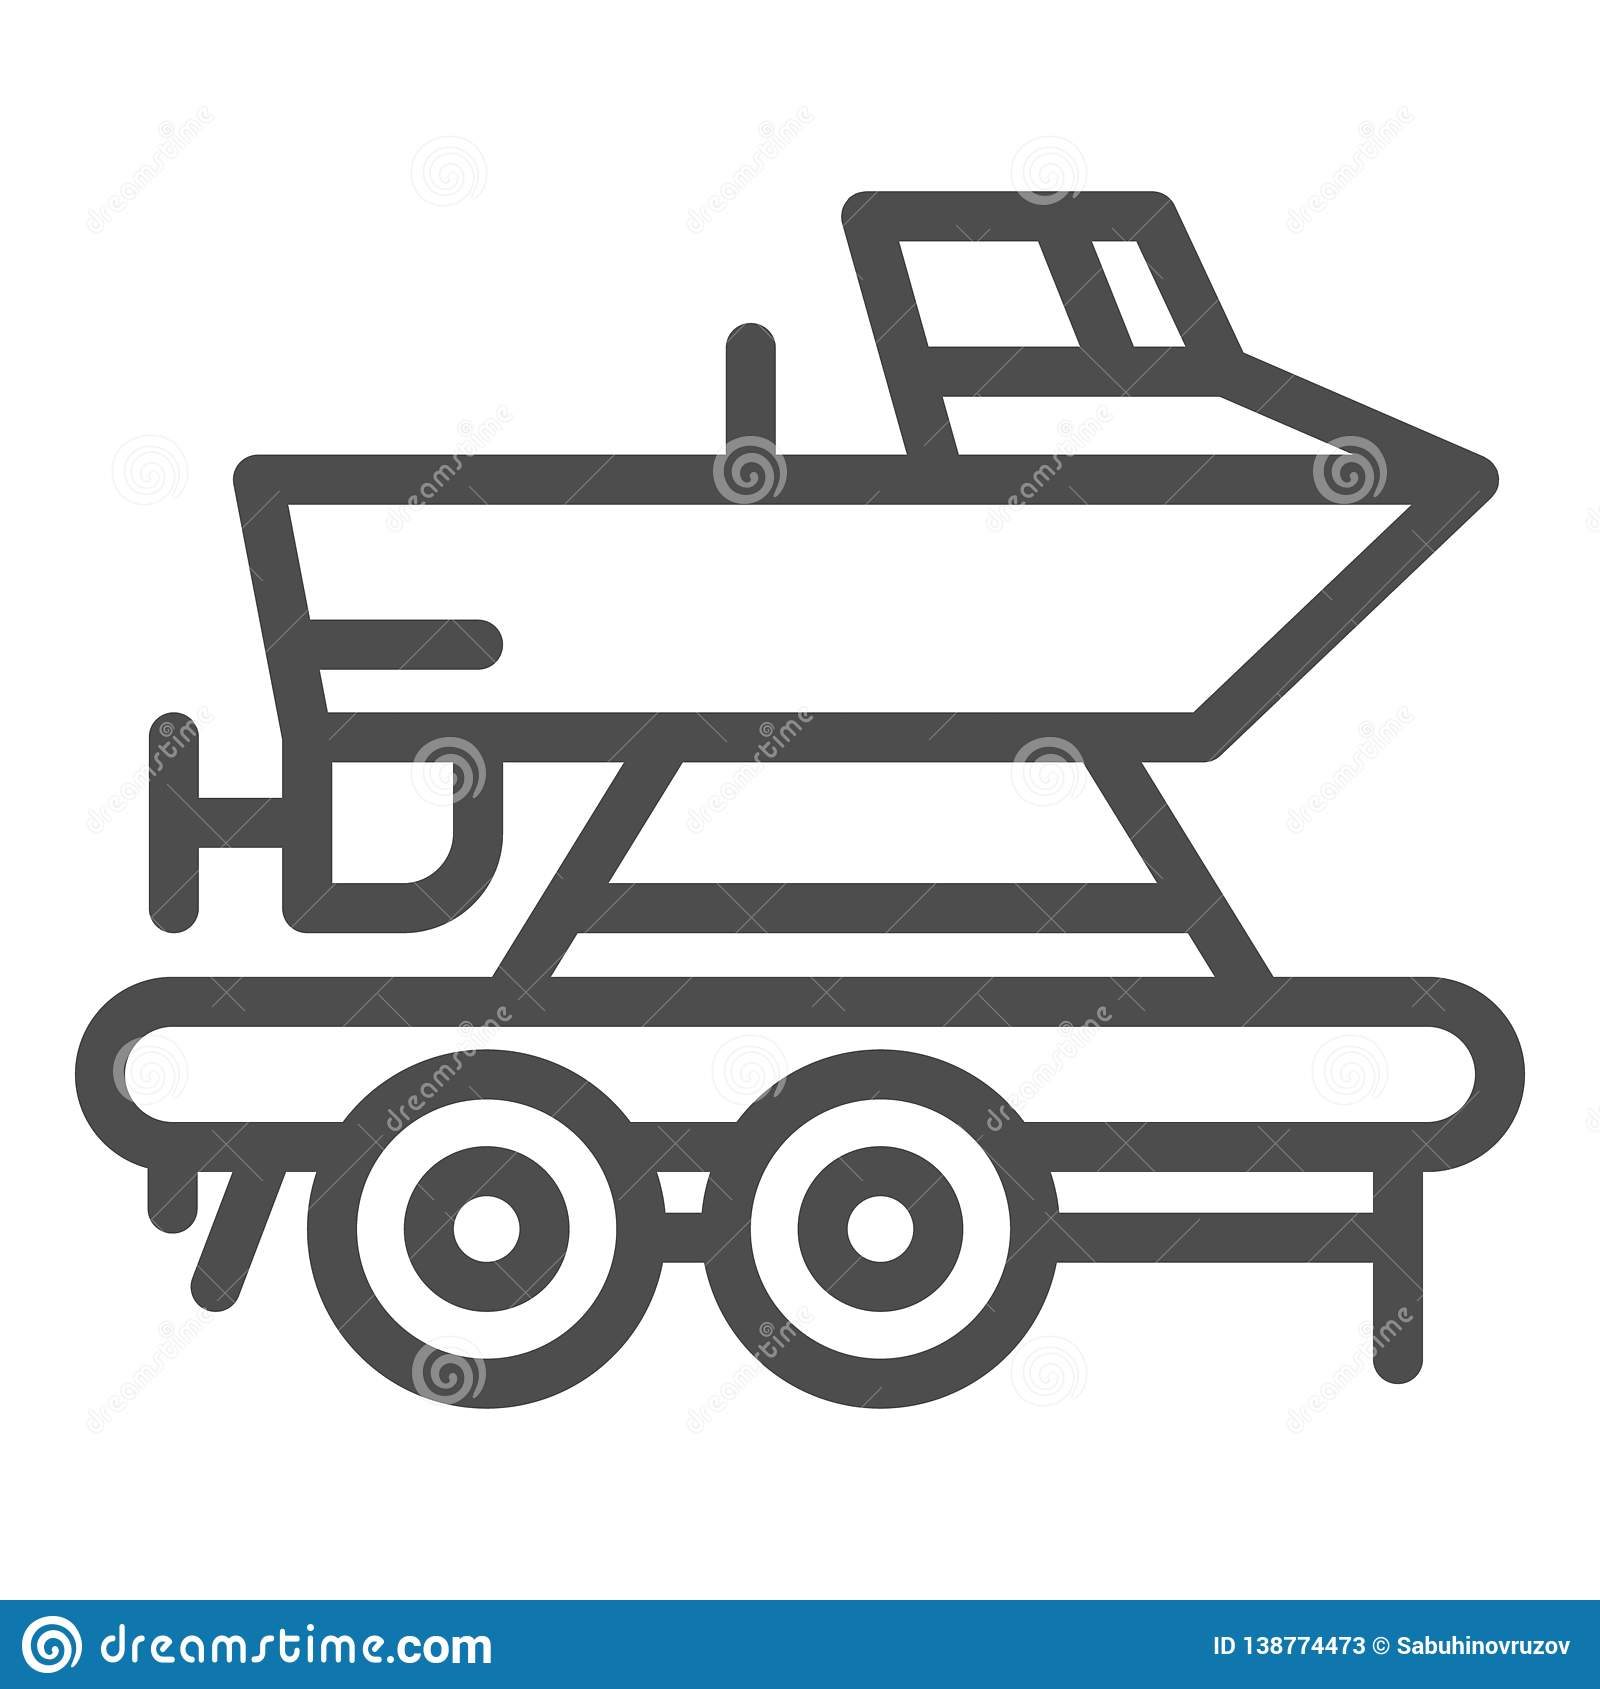 Boat on a trailer line icon. Boats transportation vector illustration isolated on white. Transportation of a ship